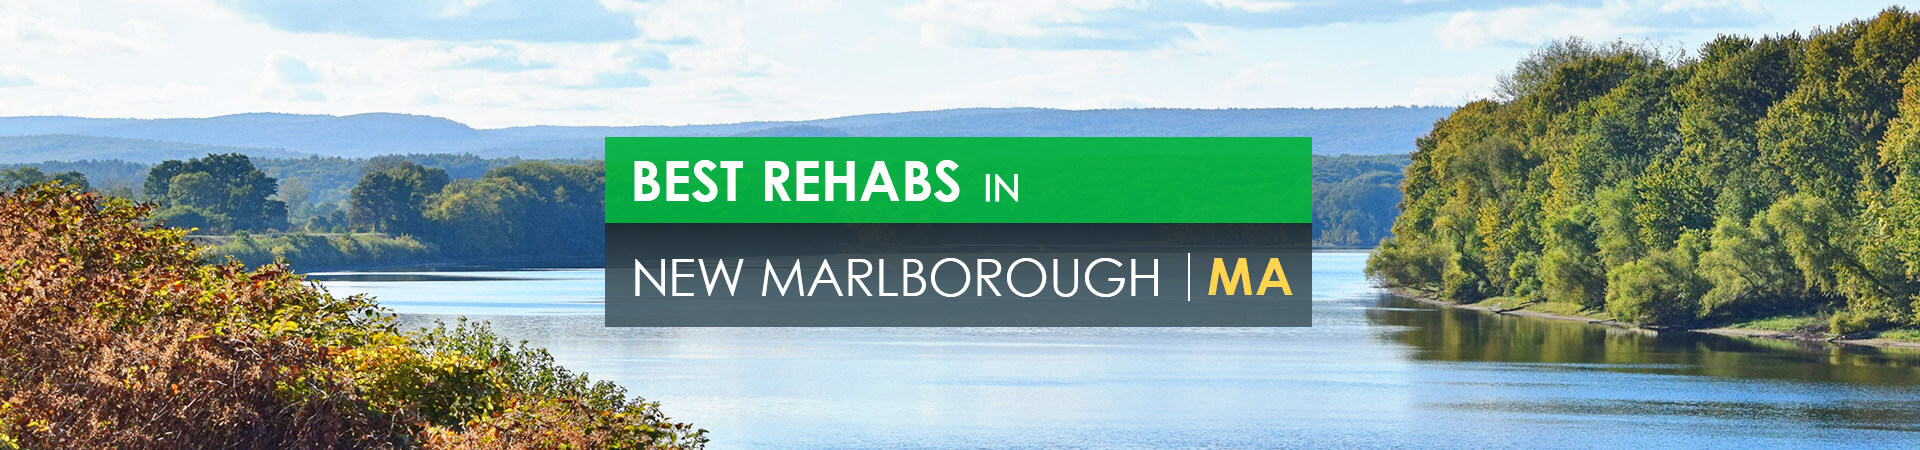 Best rehabs in New Marlborough, MA